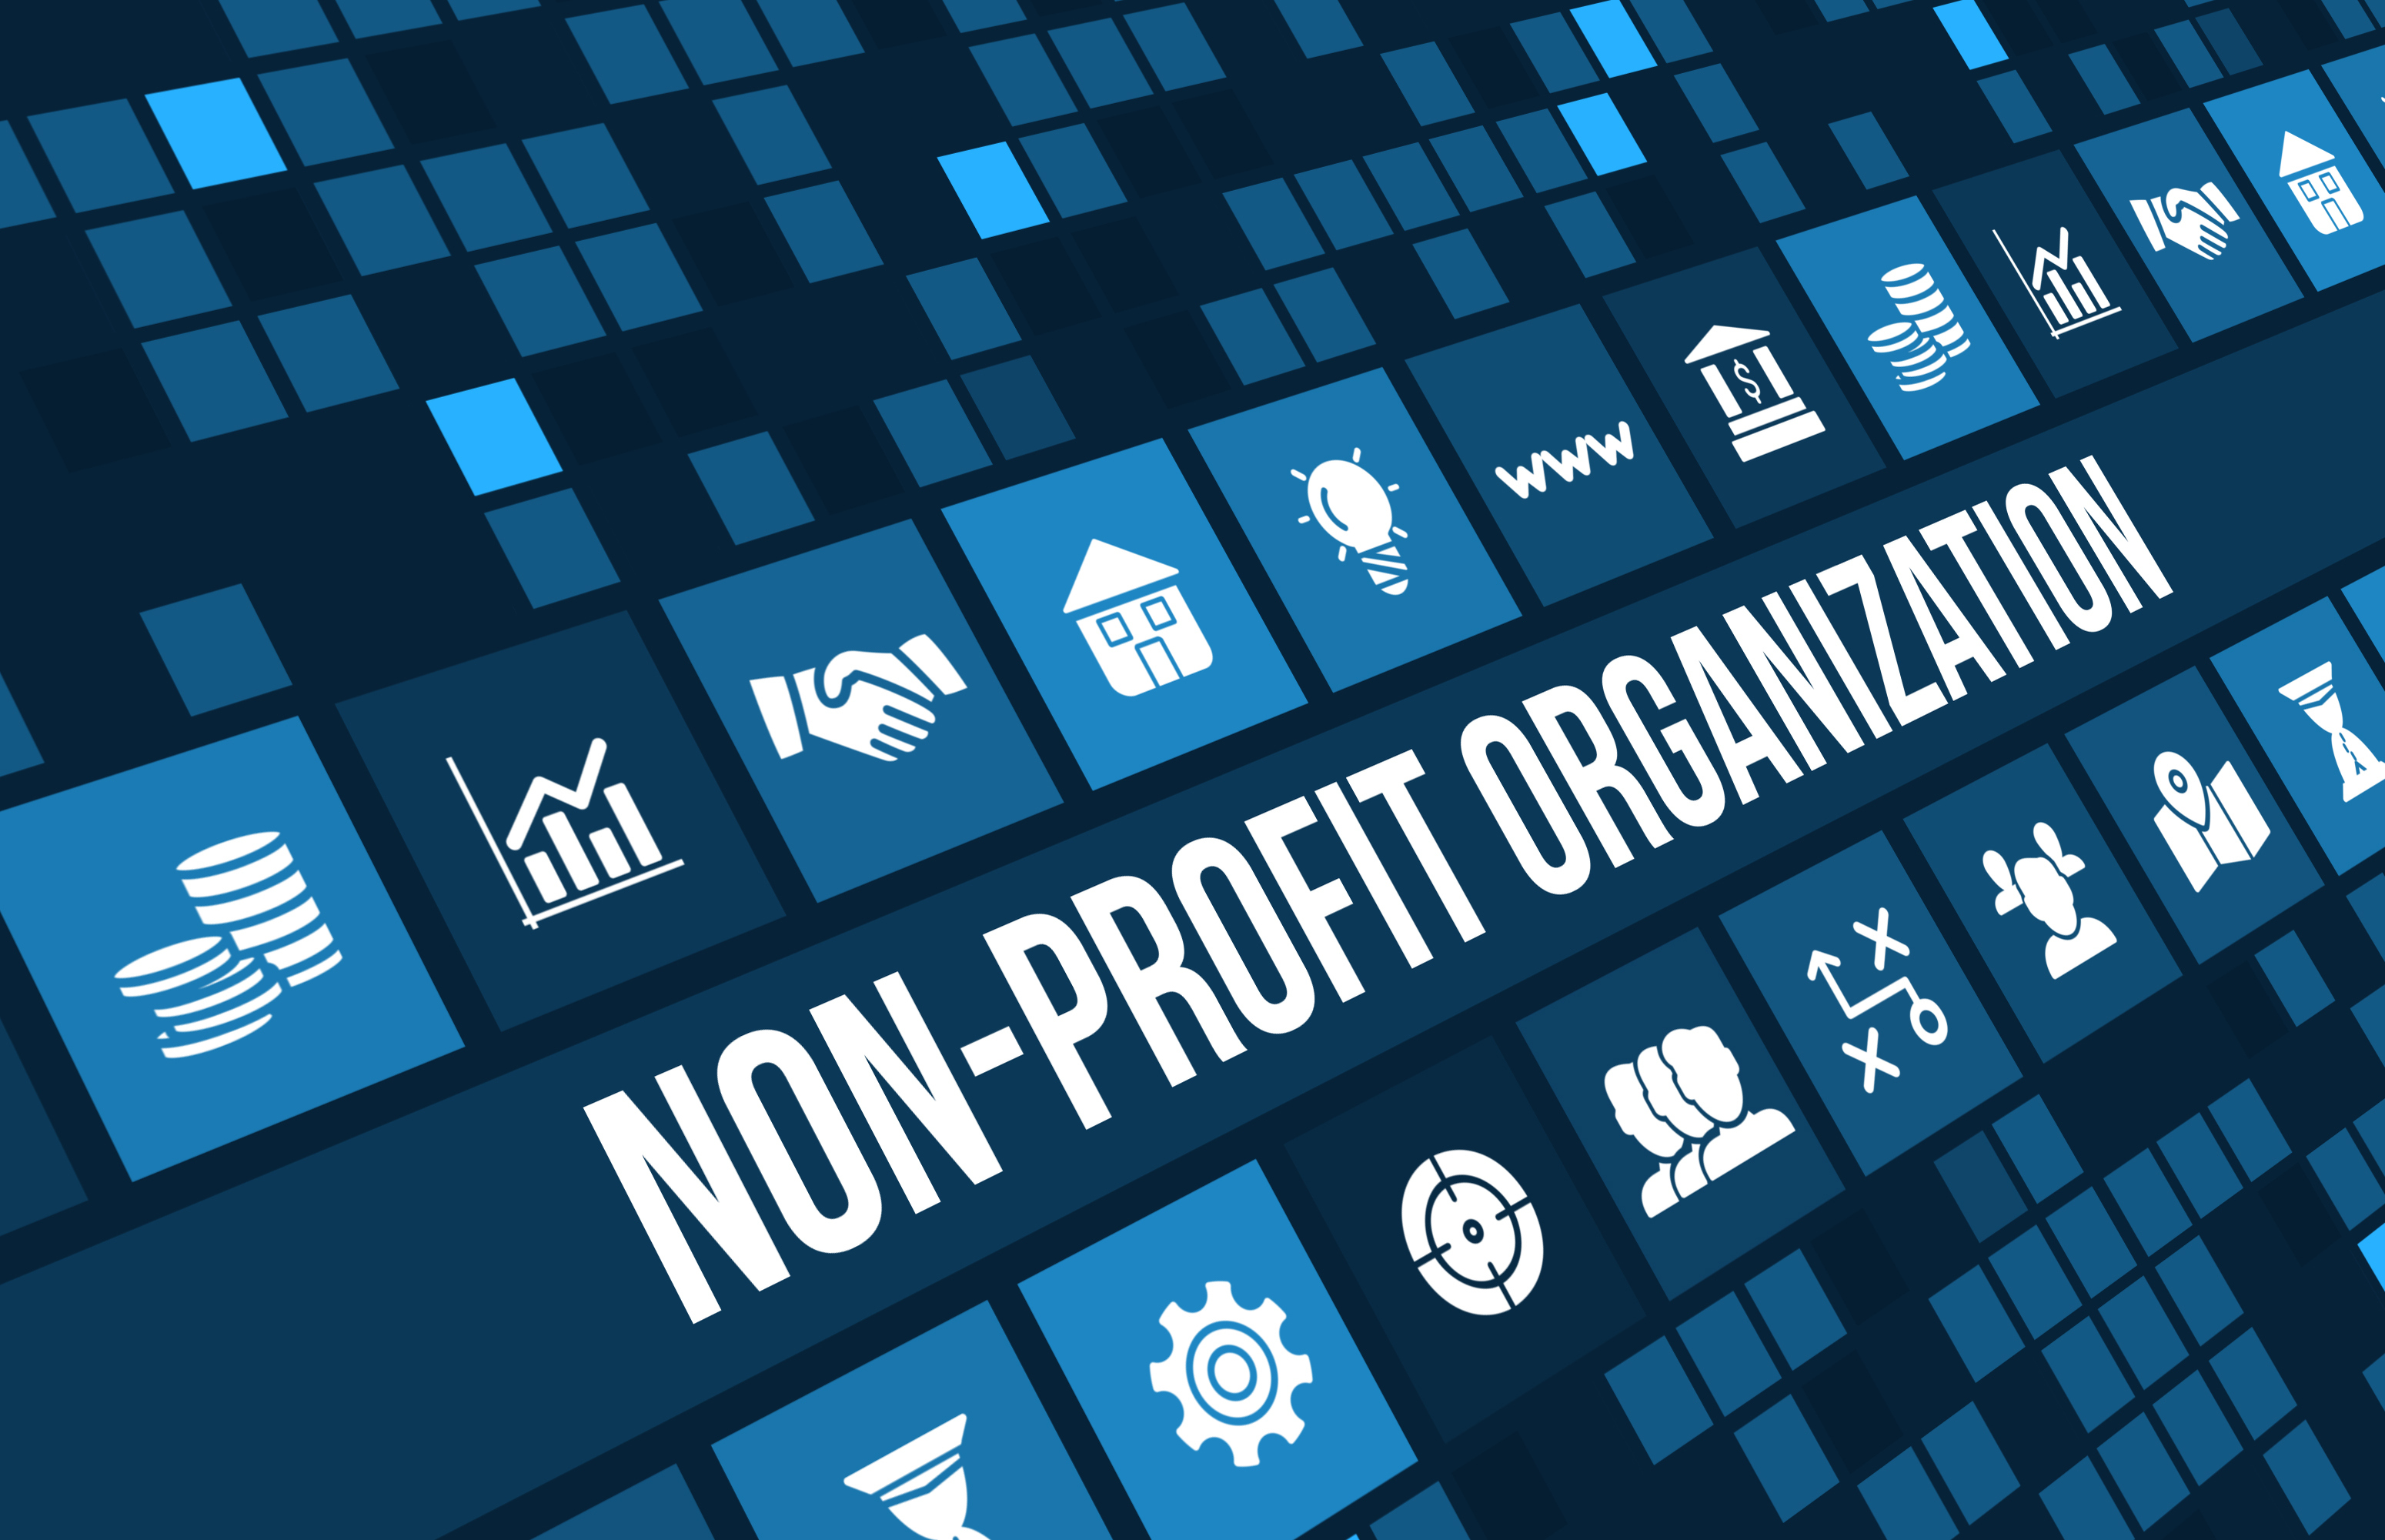 Nonprofits Should Use The Best Practices For Good Governance To Ensure Organizational Compliance